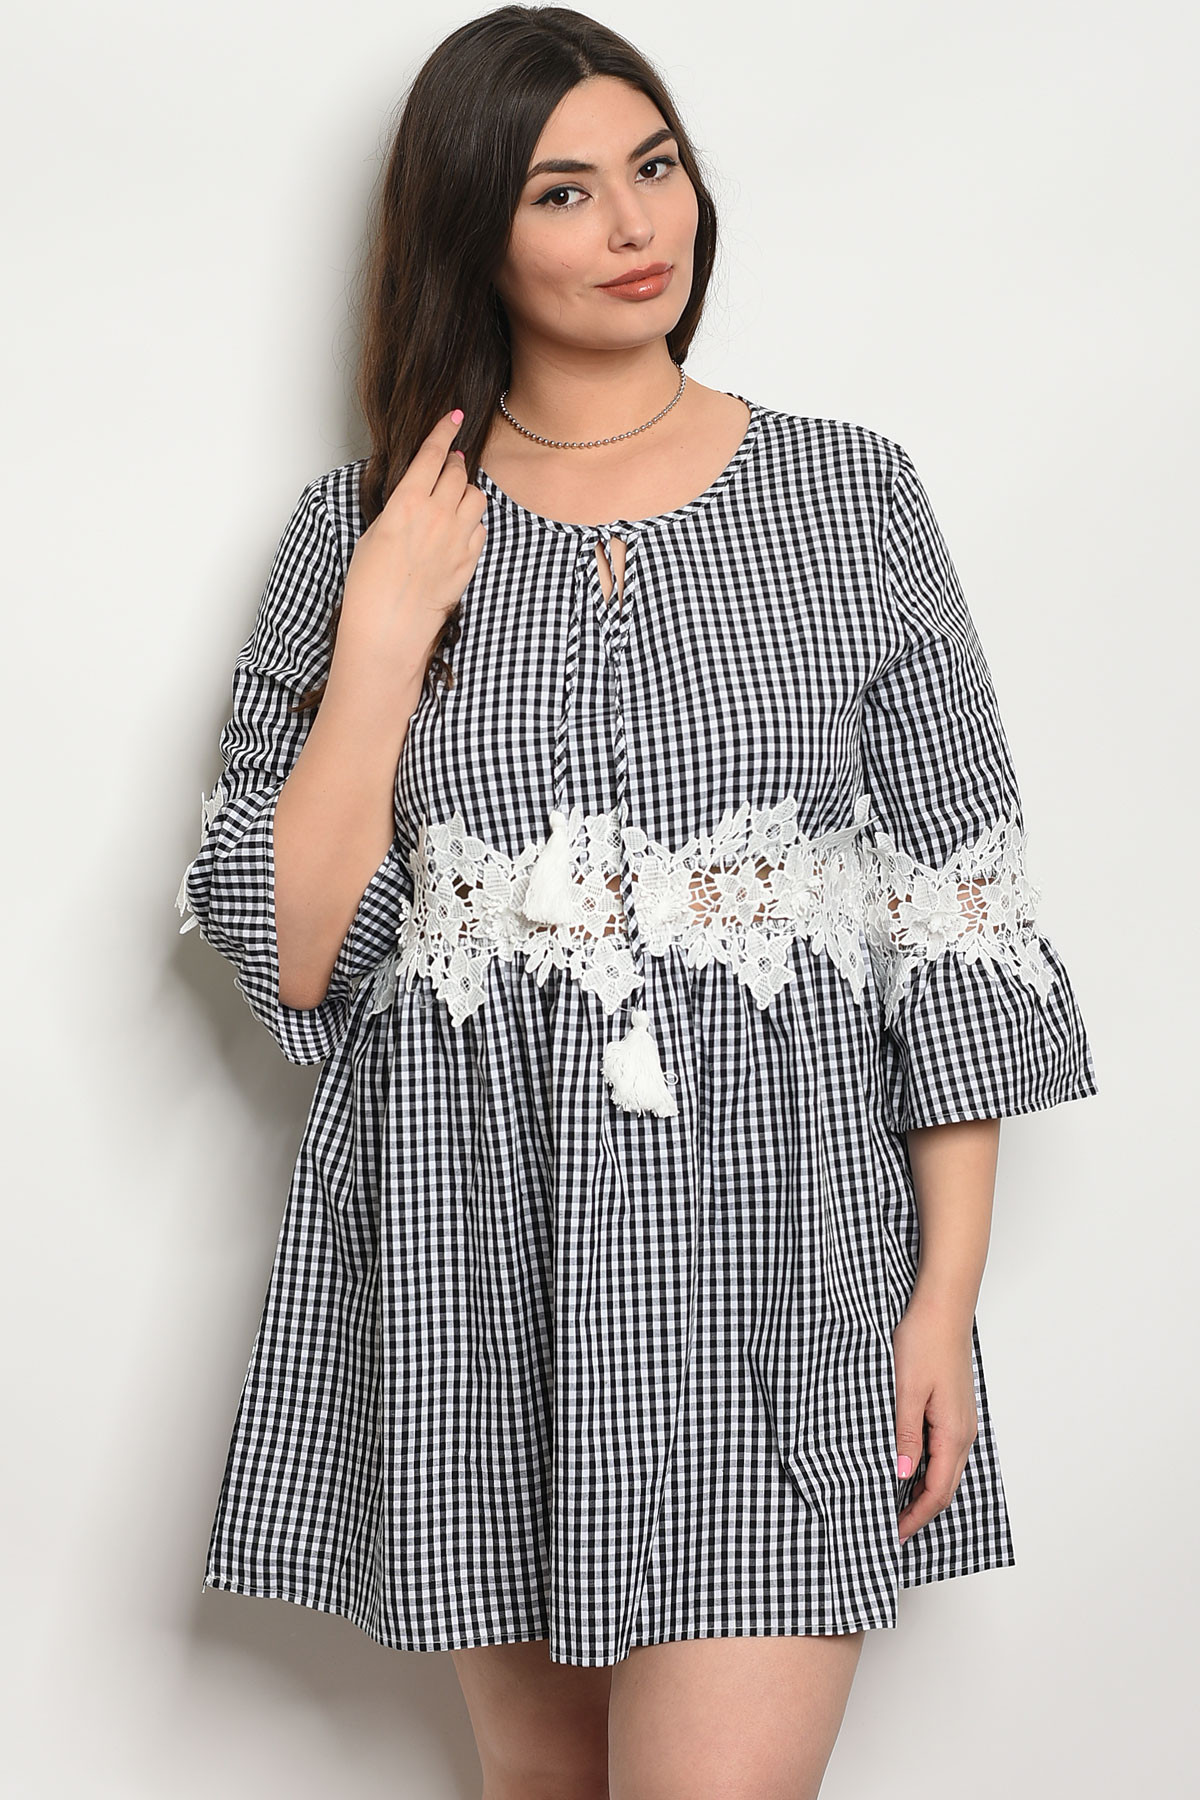 1c18f50af2a ... CHECKERED PLUS SIZE DRESS 2-2- · Larger Photo ...